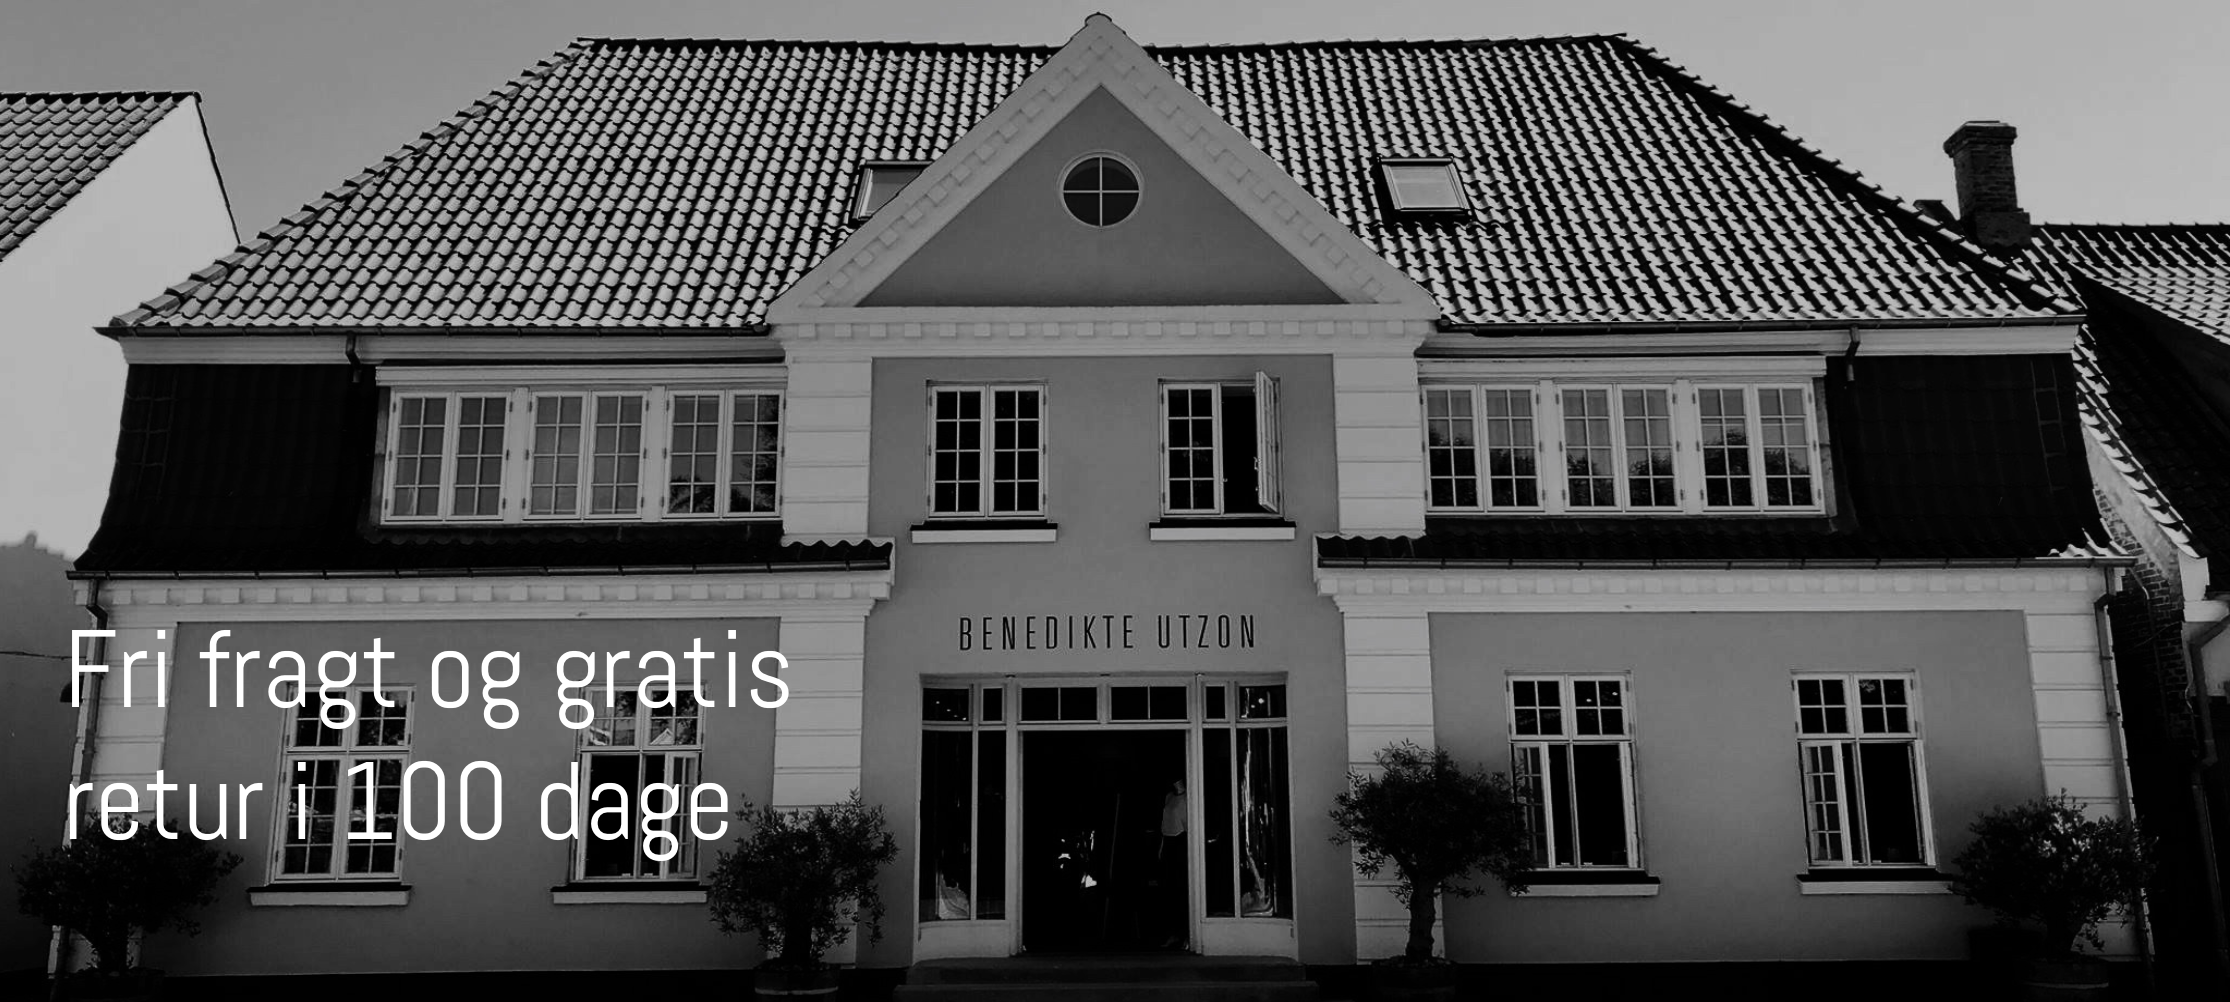 Benedikte Utzon - Header 12